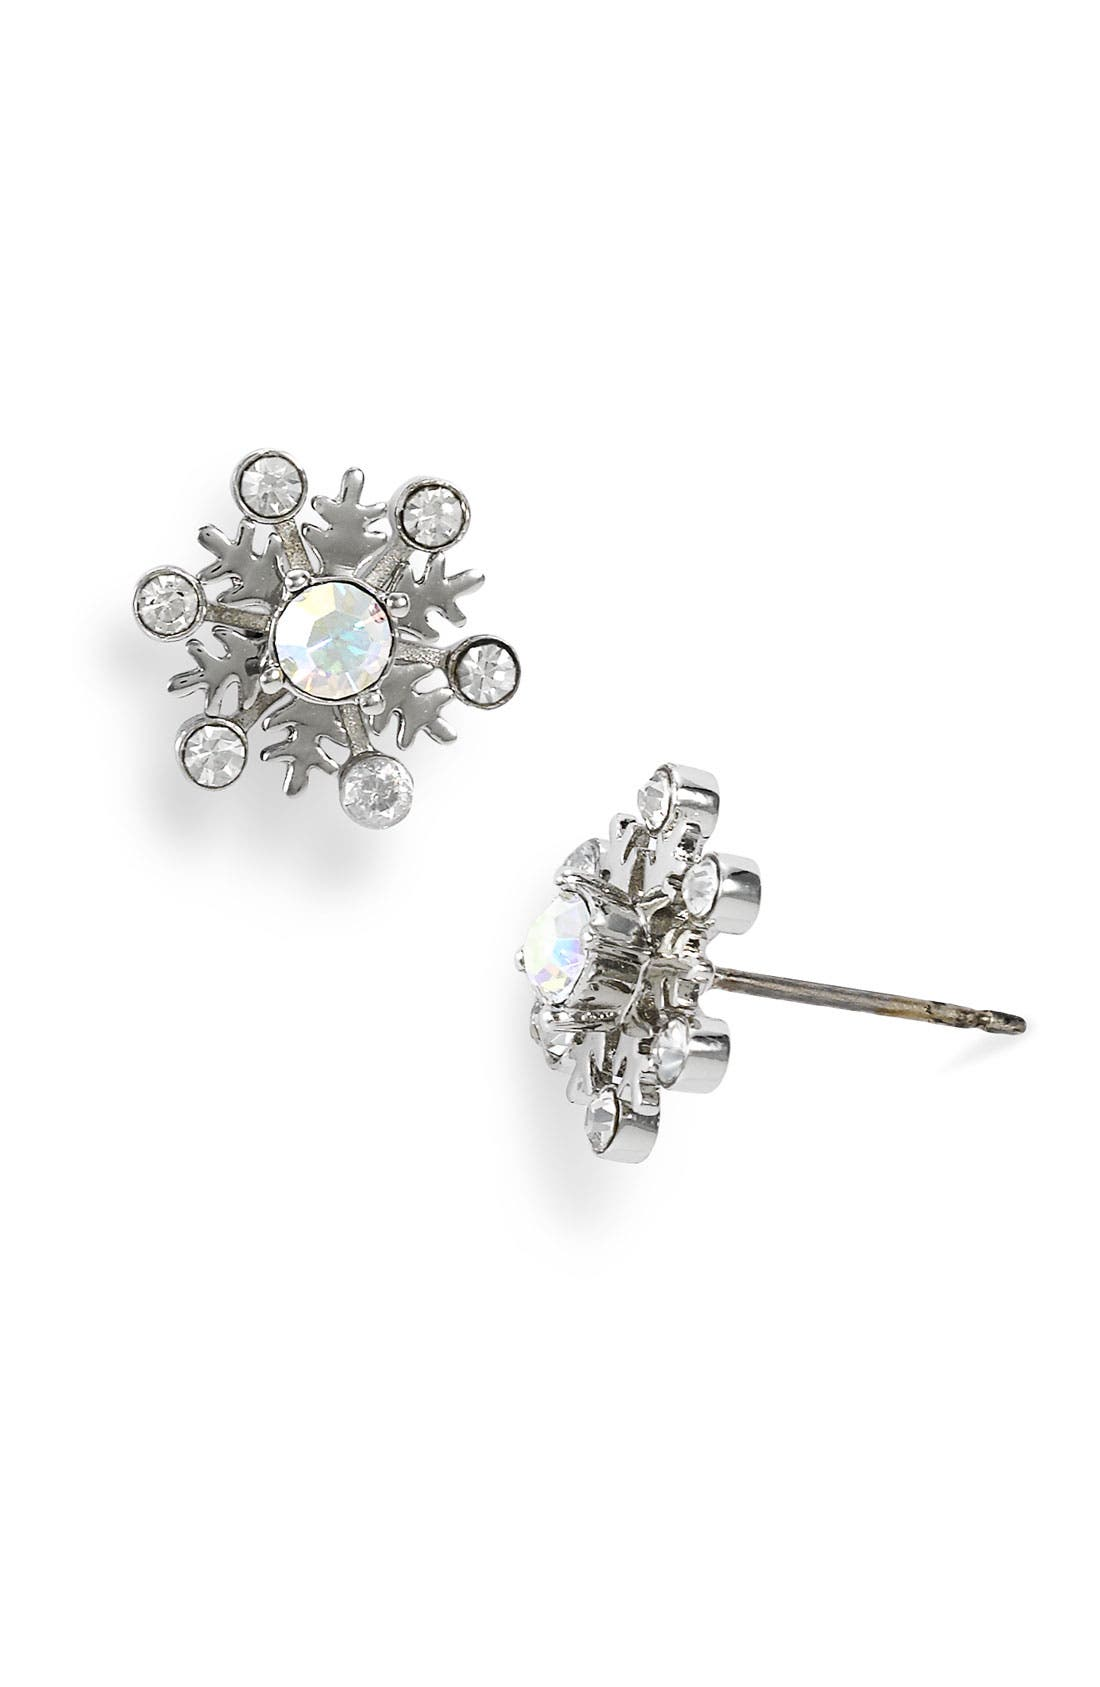 Alternate Image 1 Selected - Juicy Couture 'Bundled in Couture' Snowflake Stud Earrings (Limited Edition)